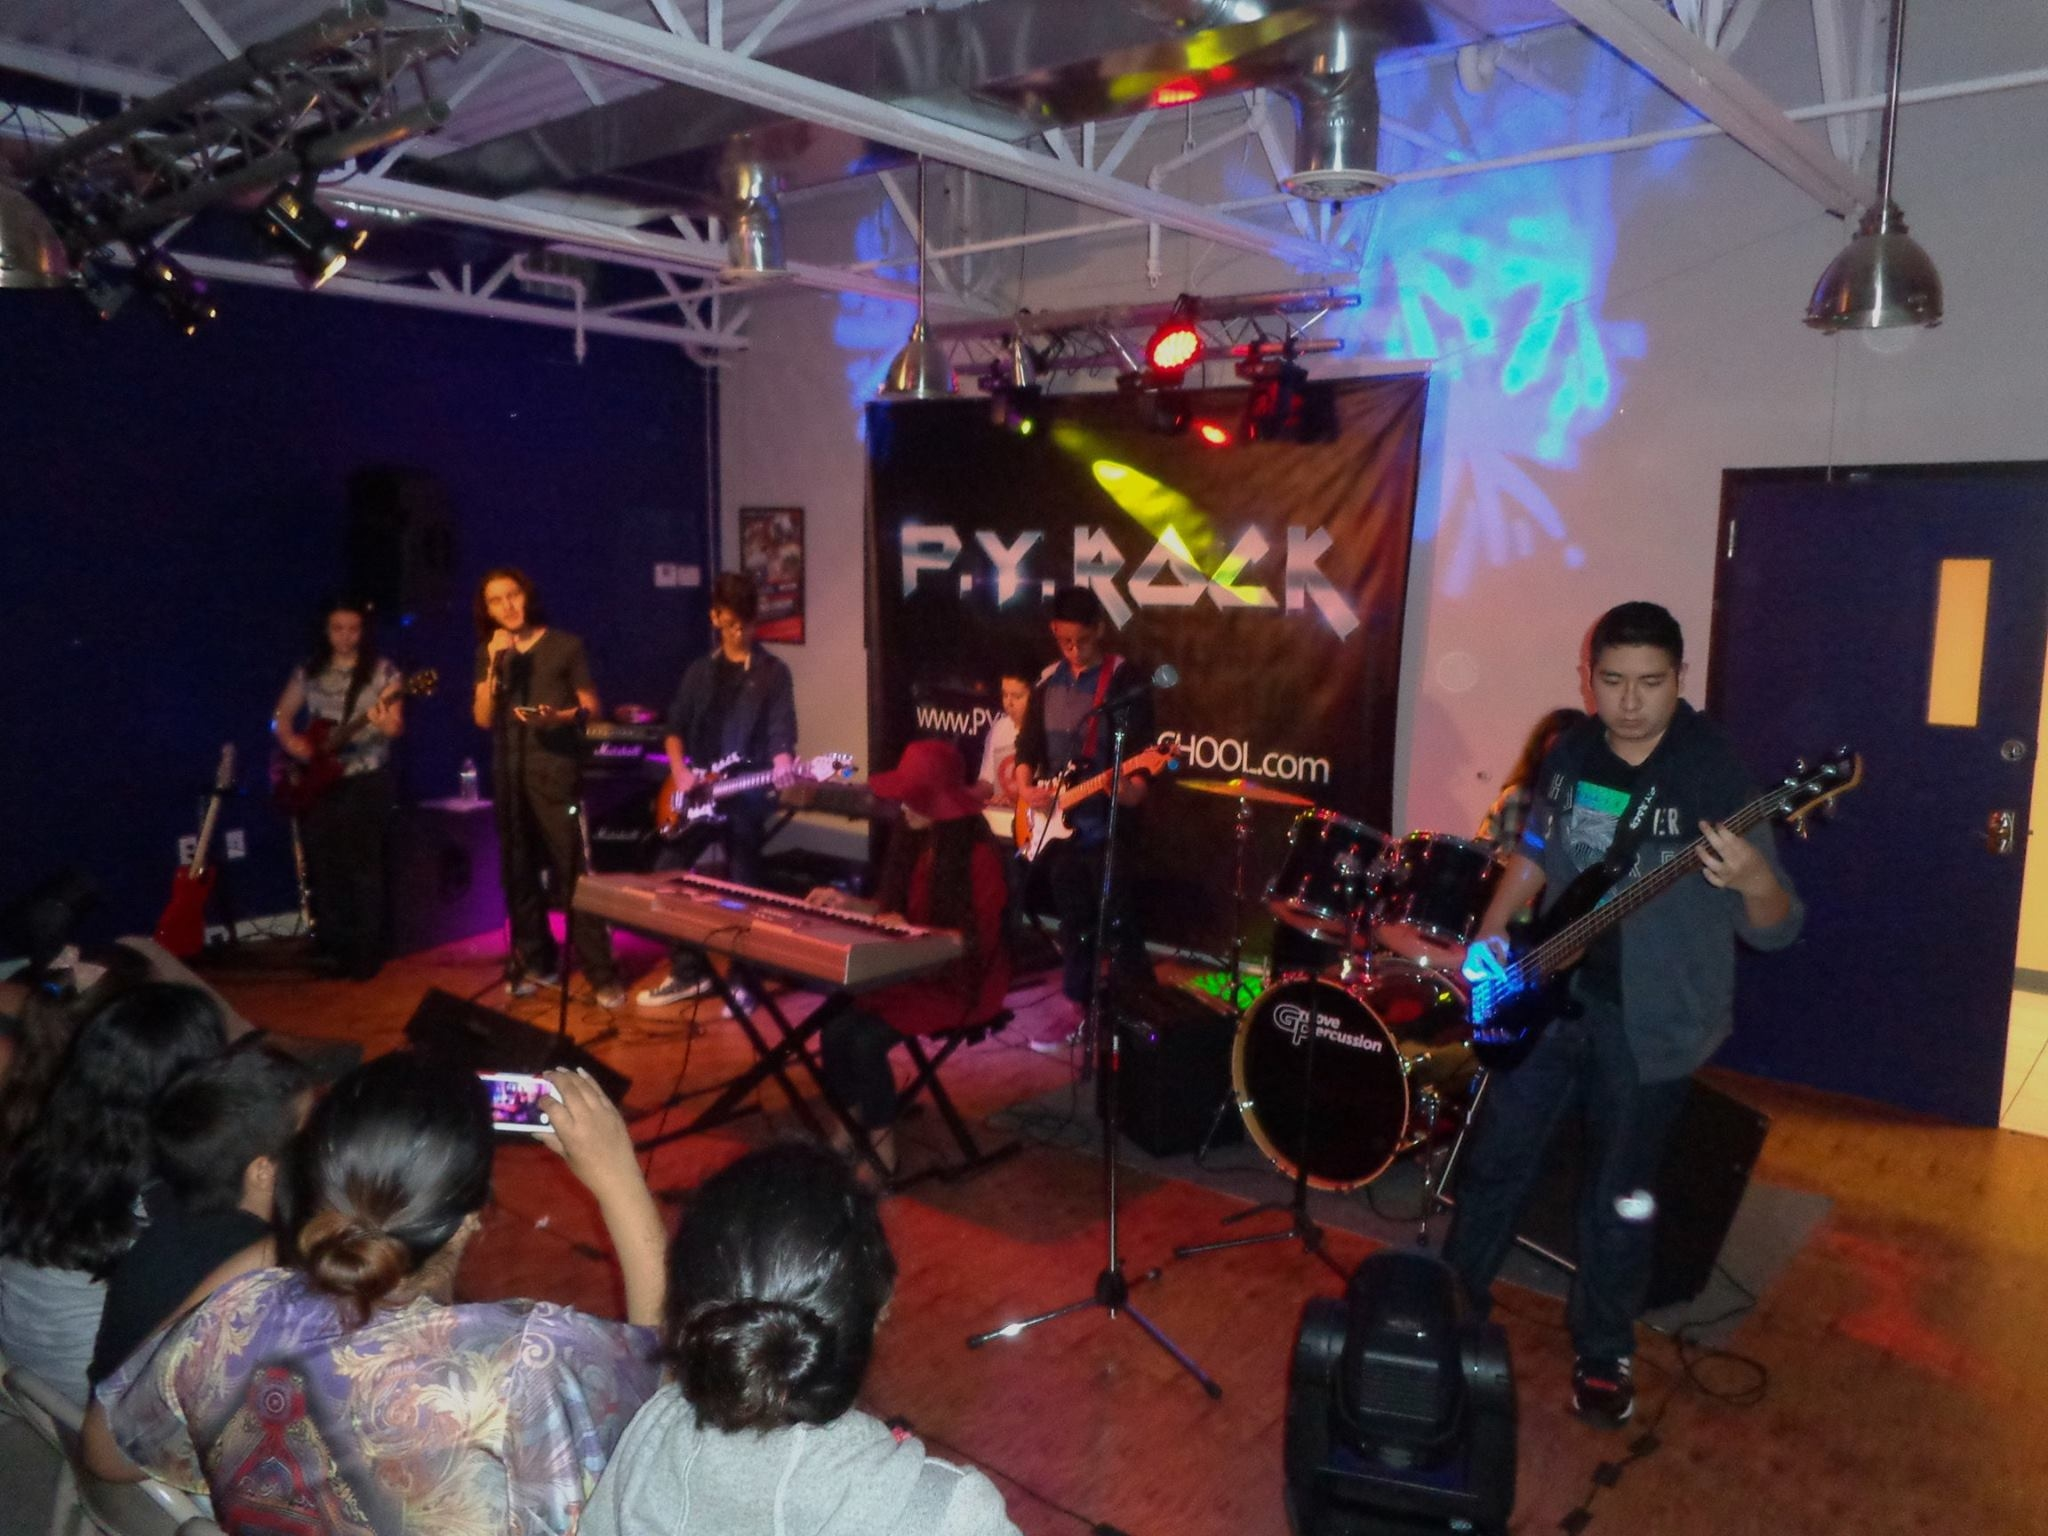 PY ROCK MUSIC SCHOOL image 2